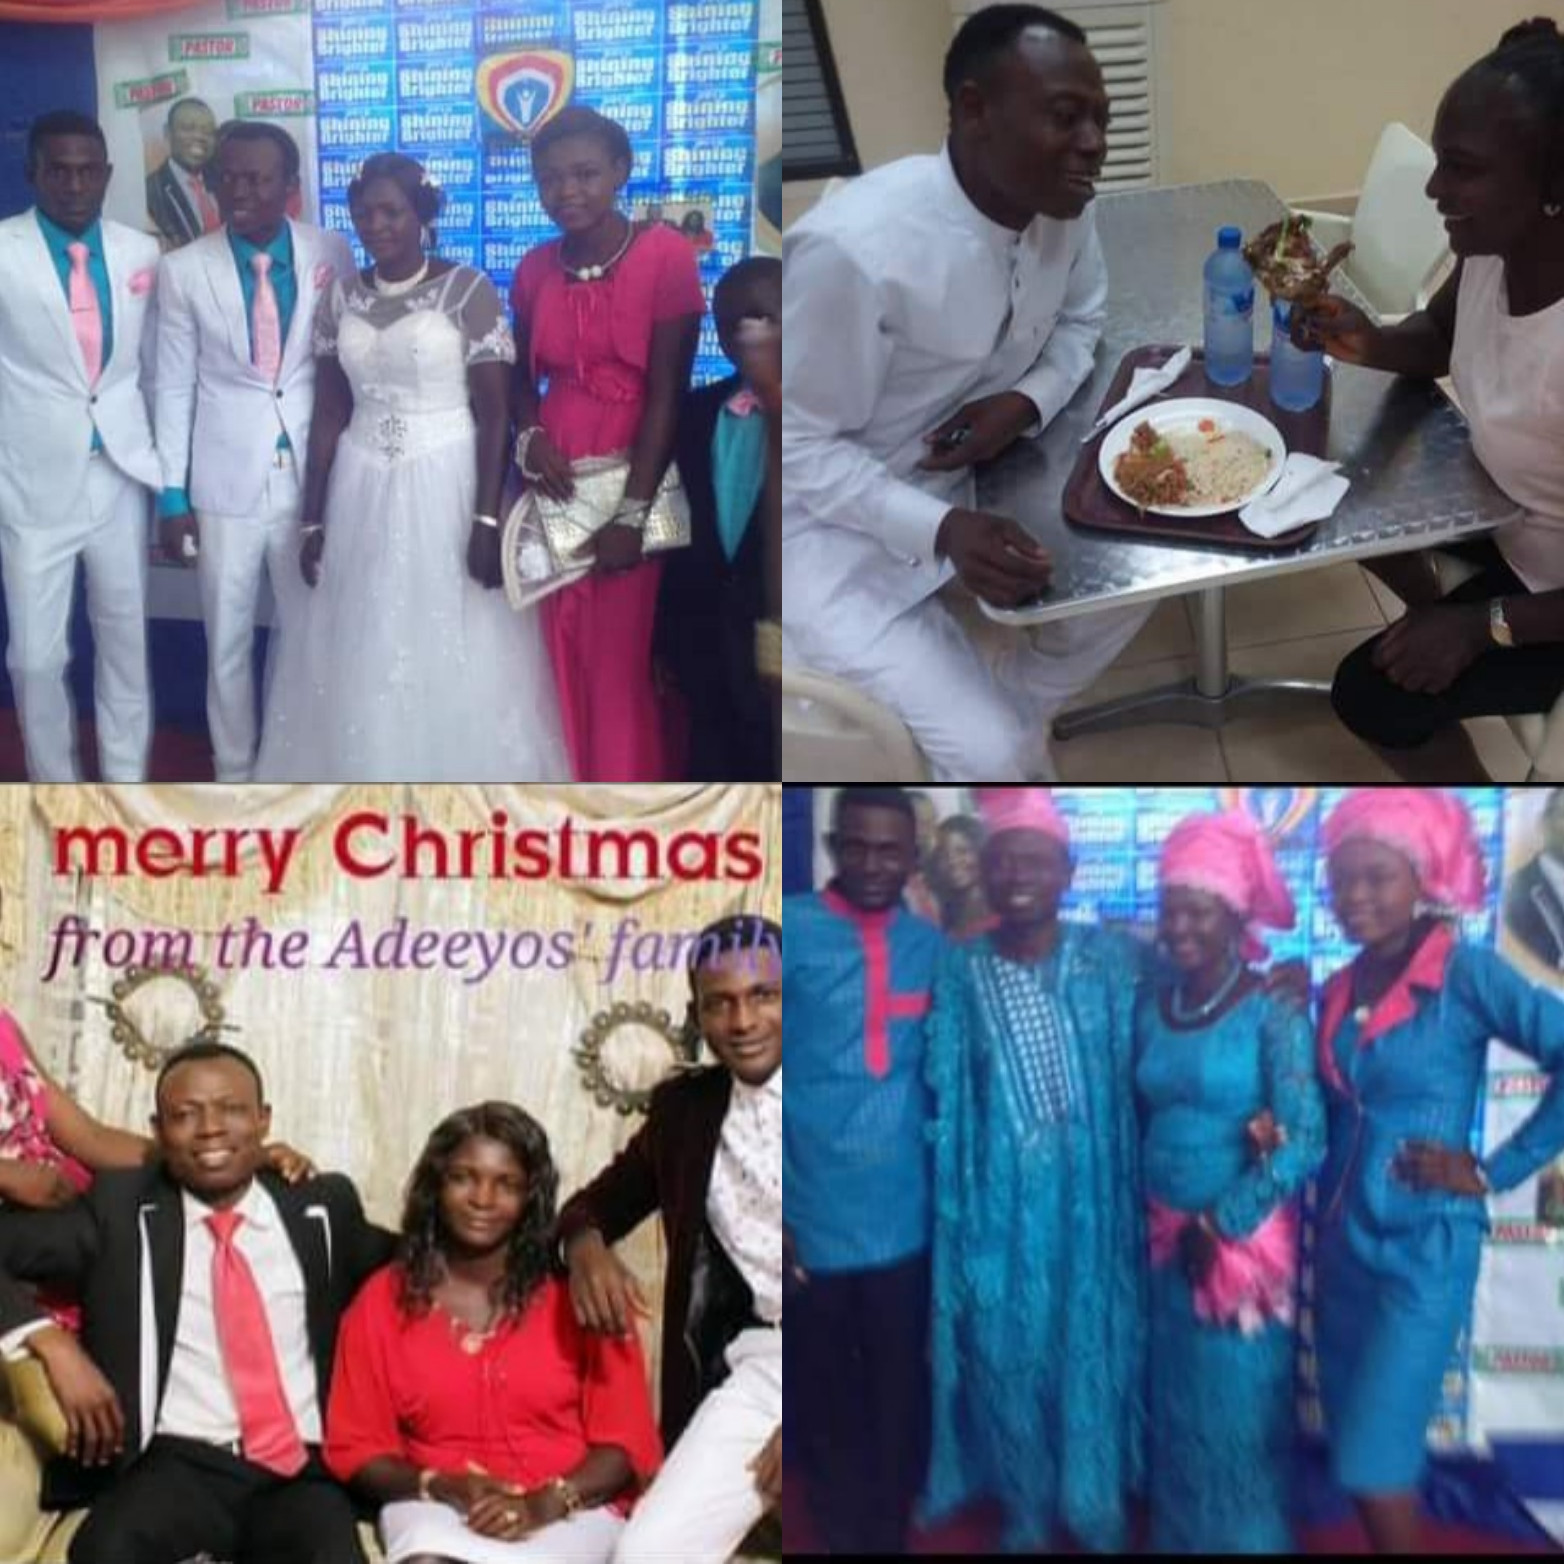 SON OF PASTOR WHO MARRIED MEMBER'S WIFE RELEASES LOVED UP FAMILY PHOTOS OF PASTOR MOSES WITH HIS FIRST WIFE AS HE ASKS PEOPLE TO PRAY FOR HIS FAMILY